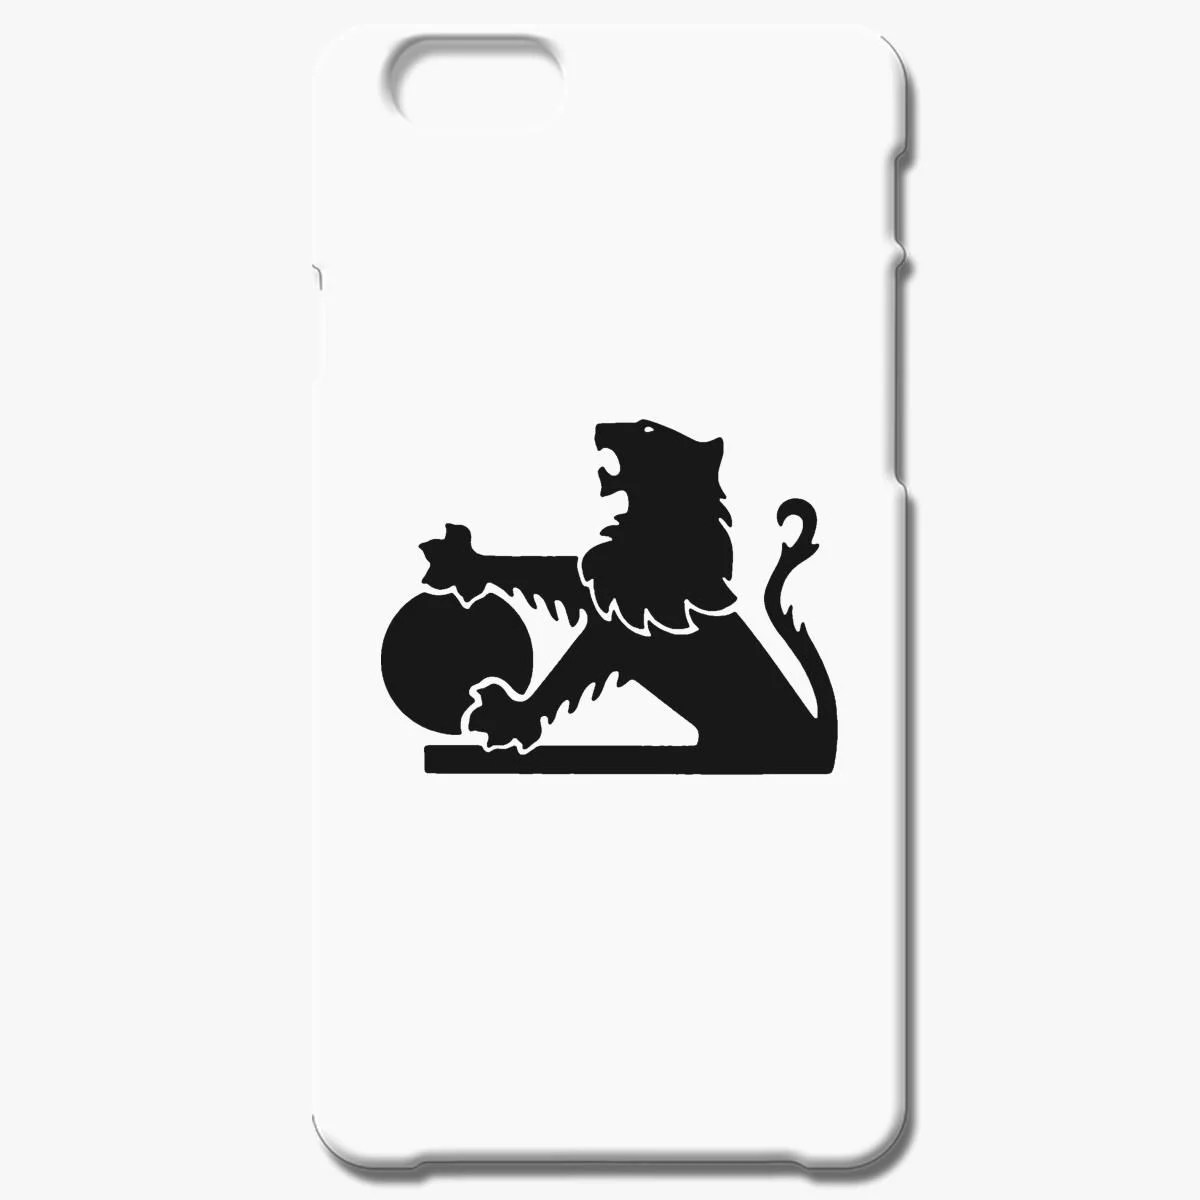 Holden Lion Iphone 6 6s Plus Case